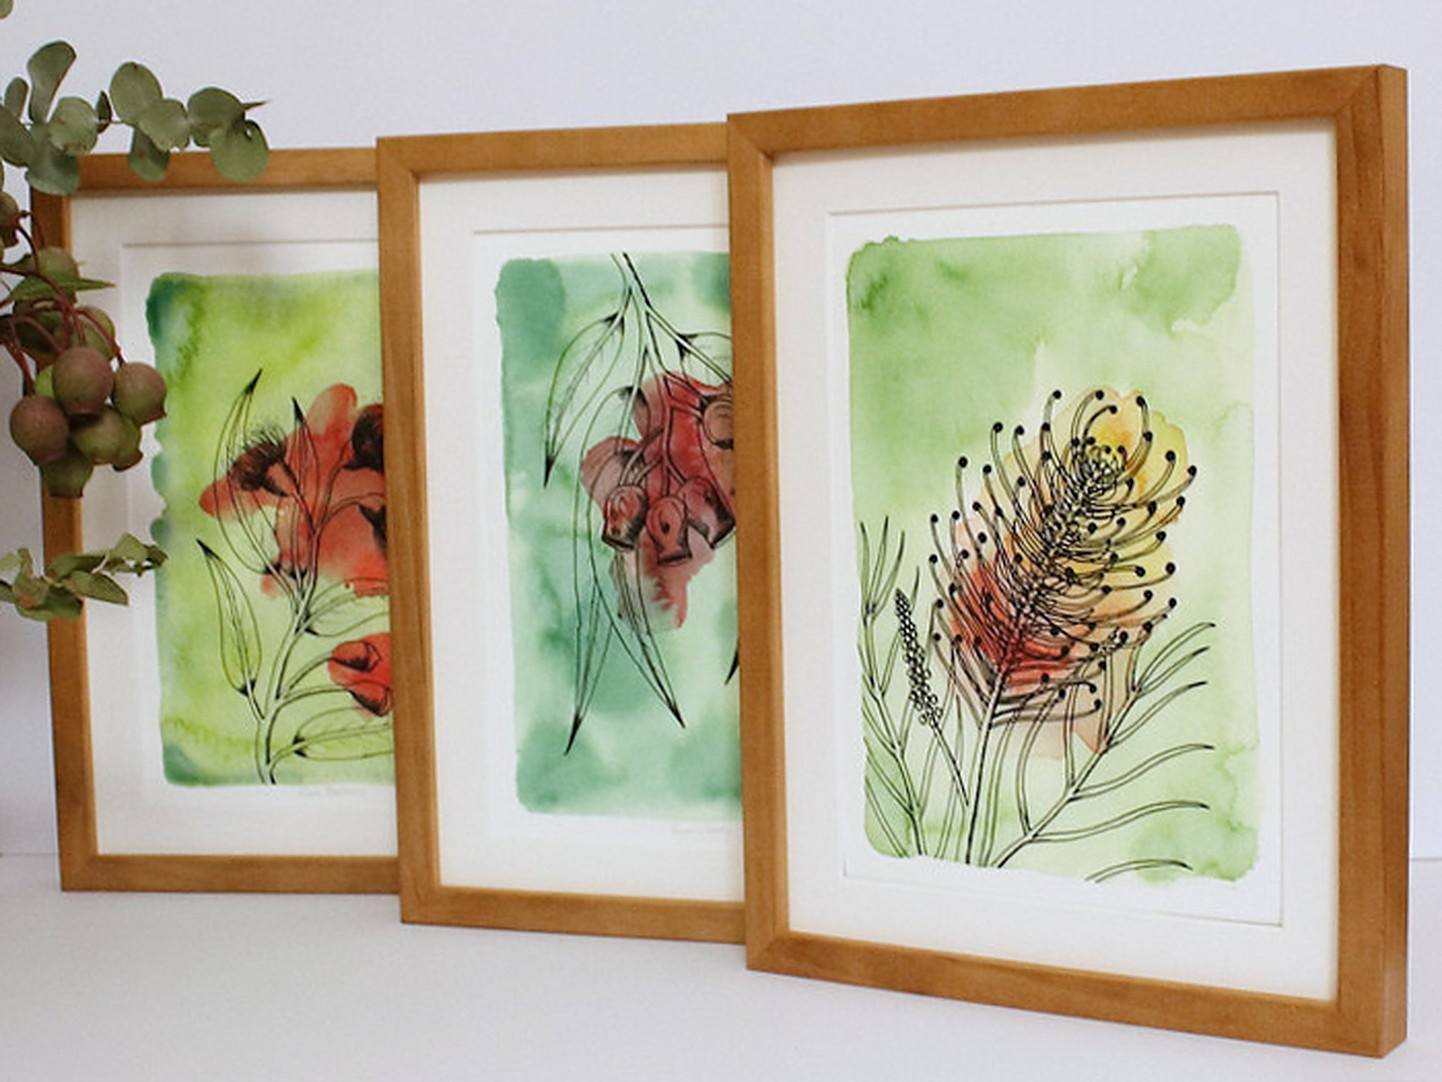 A range of framed acrylic and ink artworks depicting native Australian plants, by Kb Handmade Art